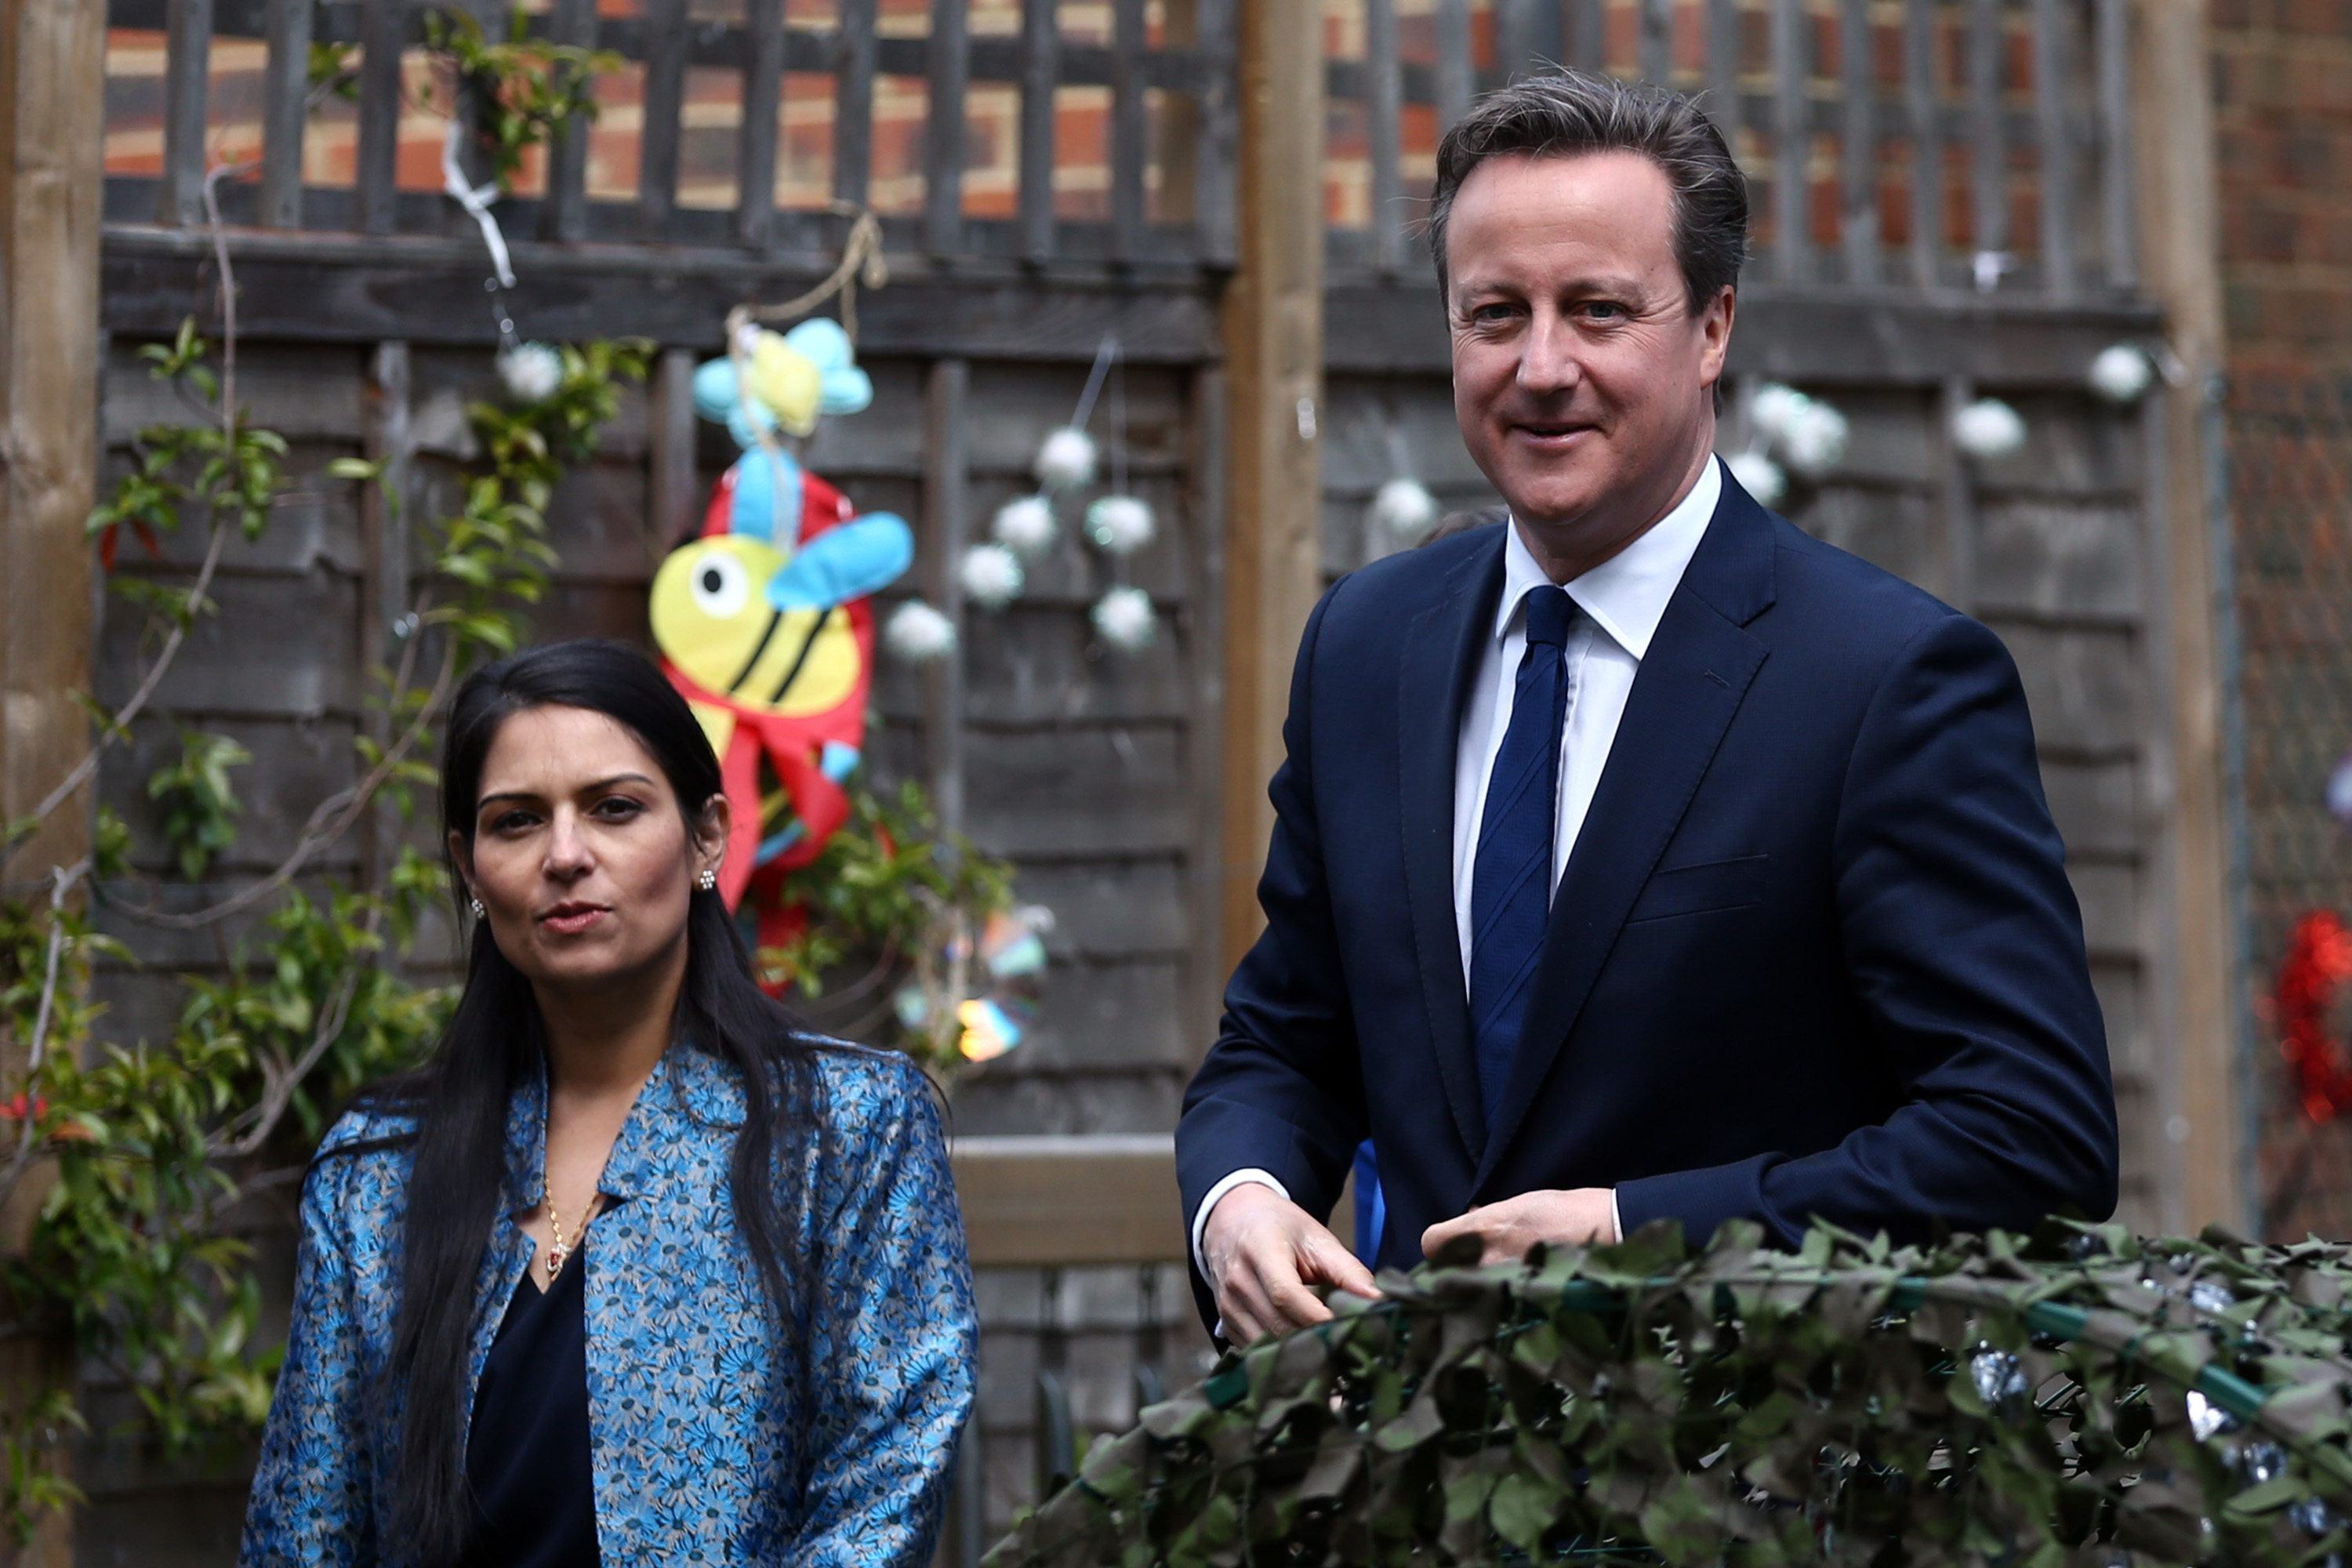 David Cameron (R) walks with Priti Patel during a visit to a children's nursery on June 1, 2015. (Photo by Carl Court - WPA Pool / Getty Images)